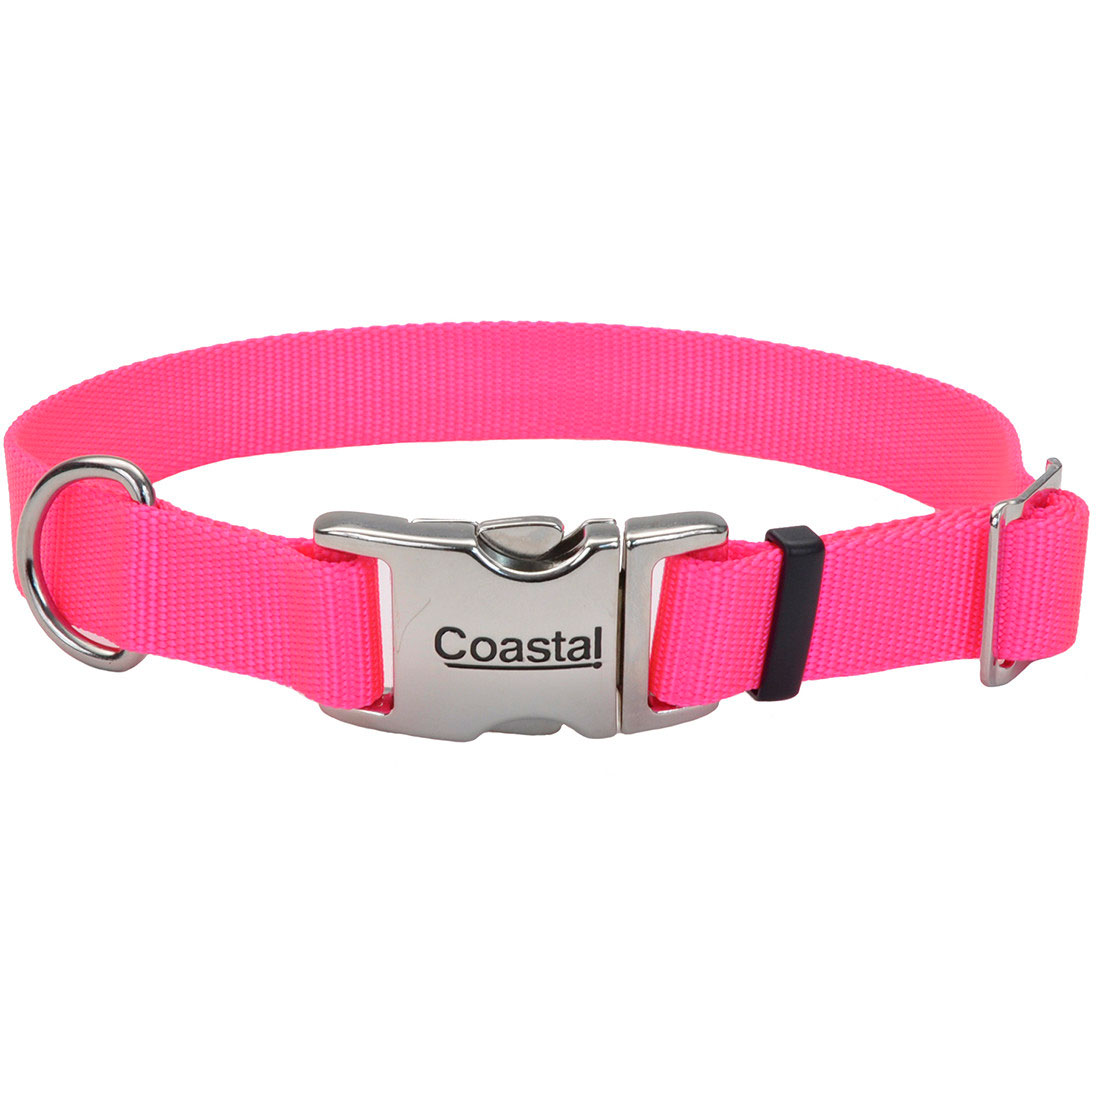 Coastal Adjustable Collar with Metal Buckle for Dogs, Neon Pink Image